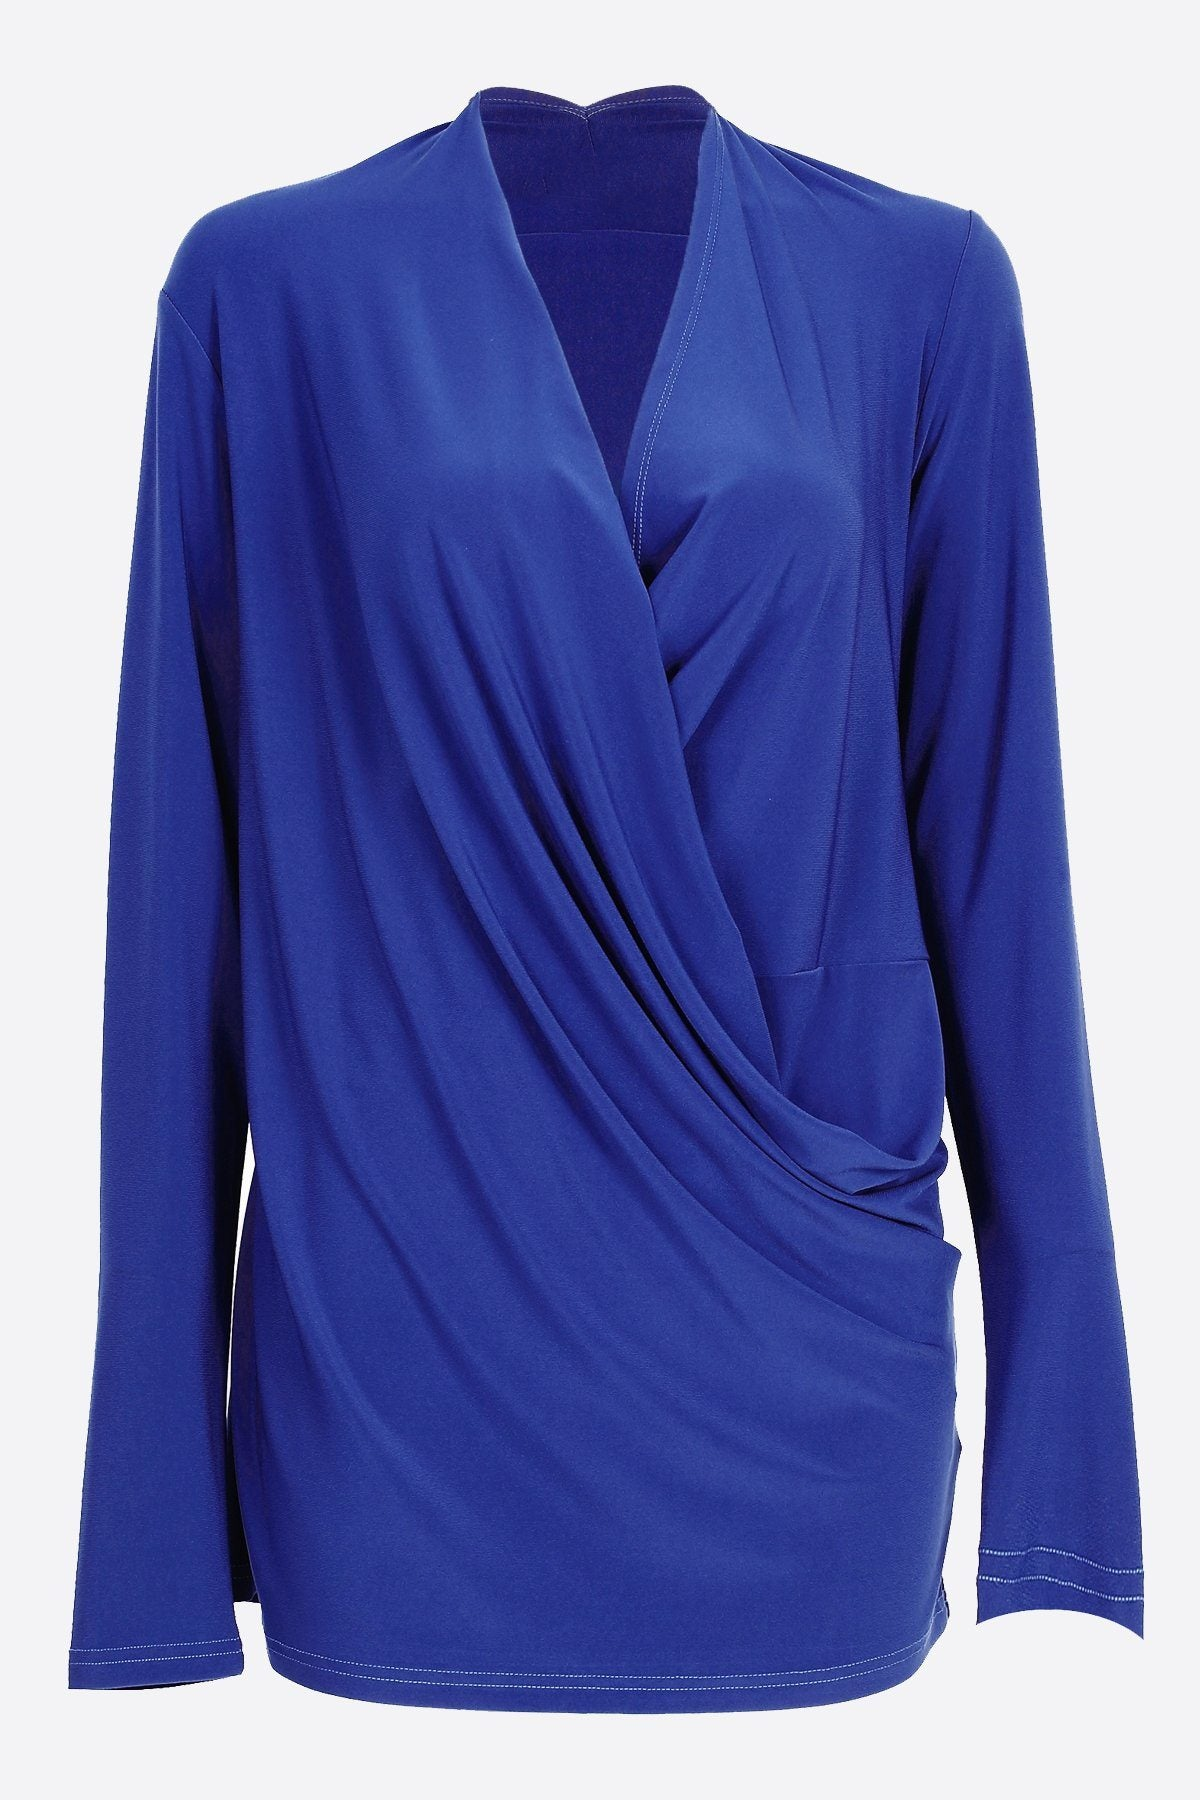 Long Sleeve Crossover Top Blue